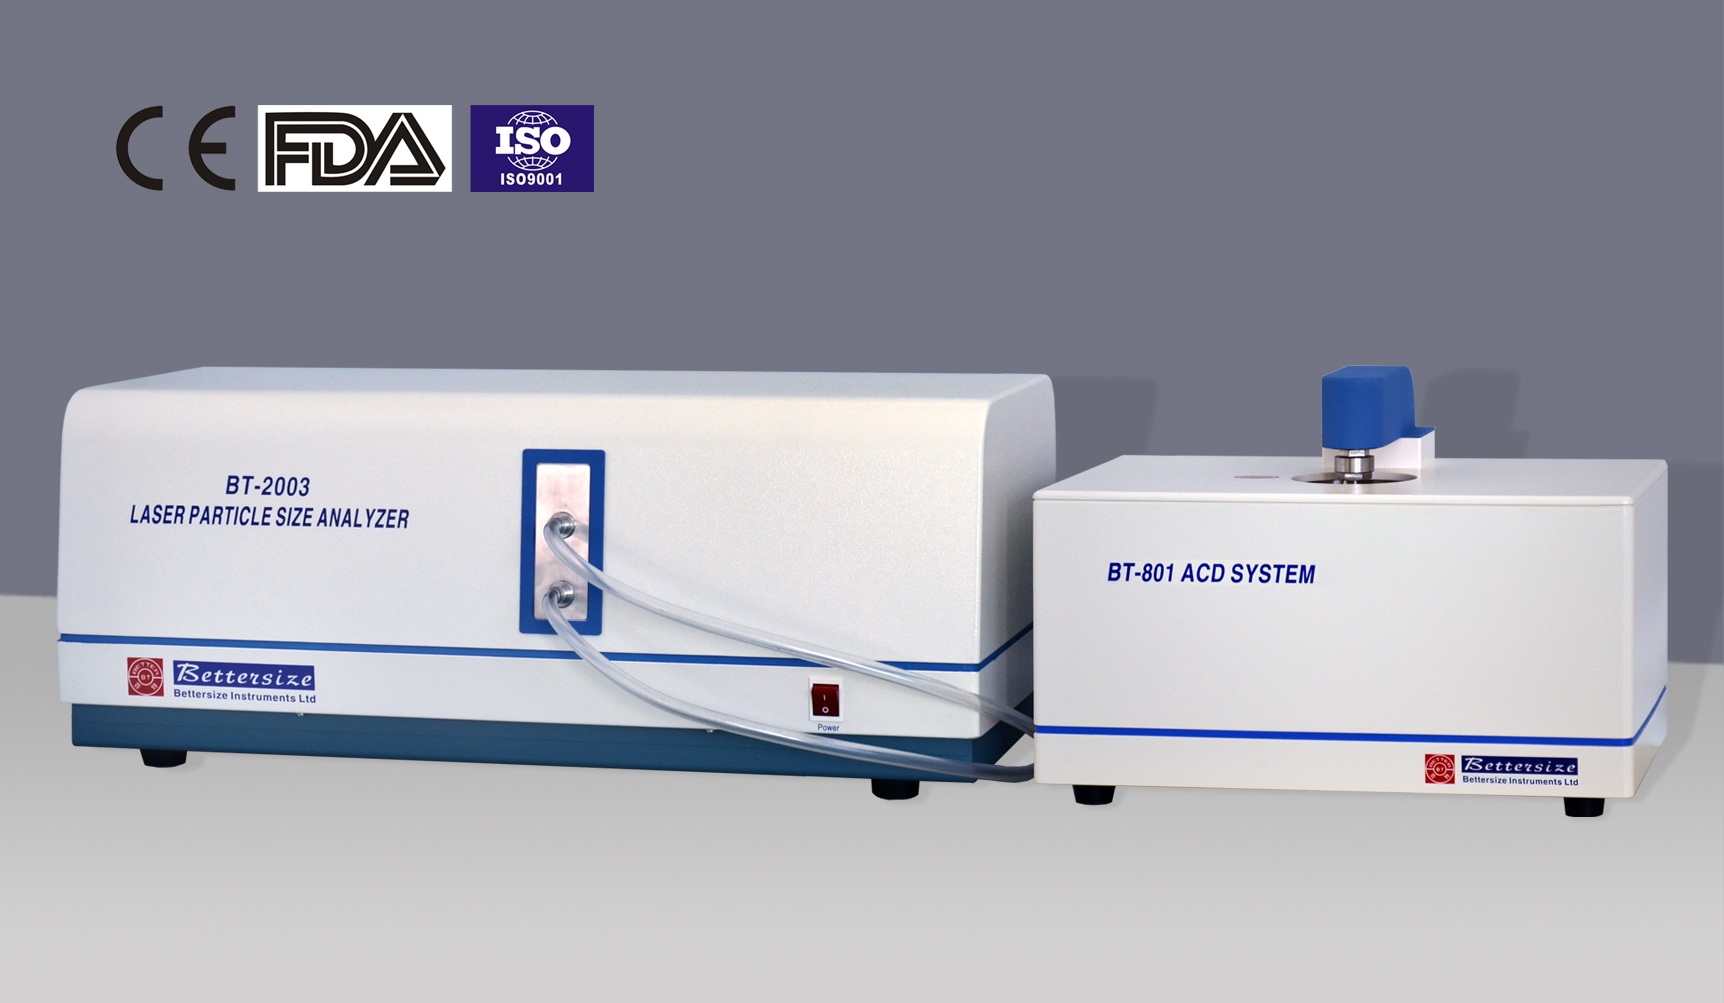 BT-2003 Laser Particle Size Analyzer